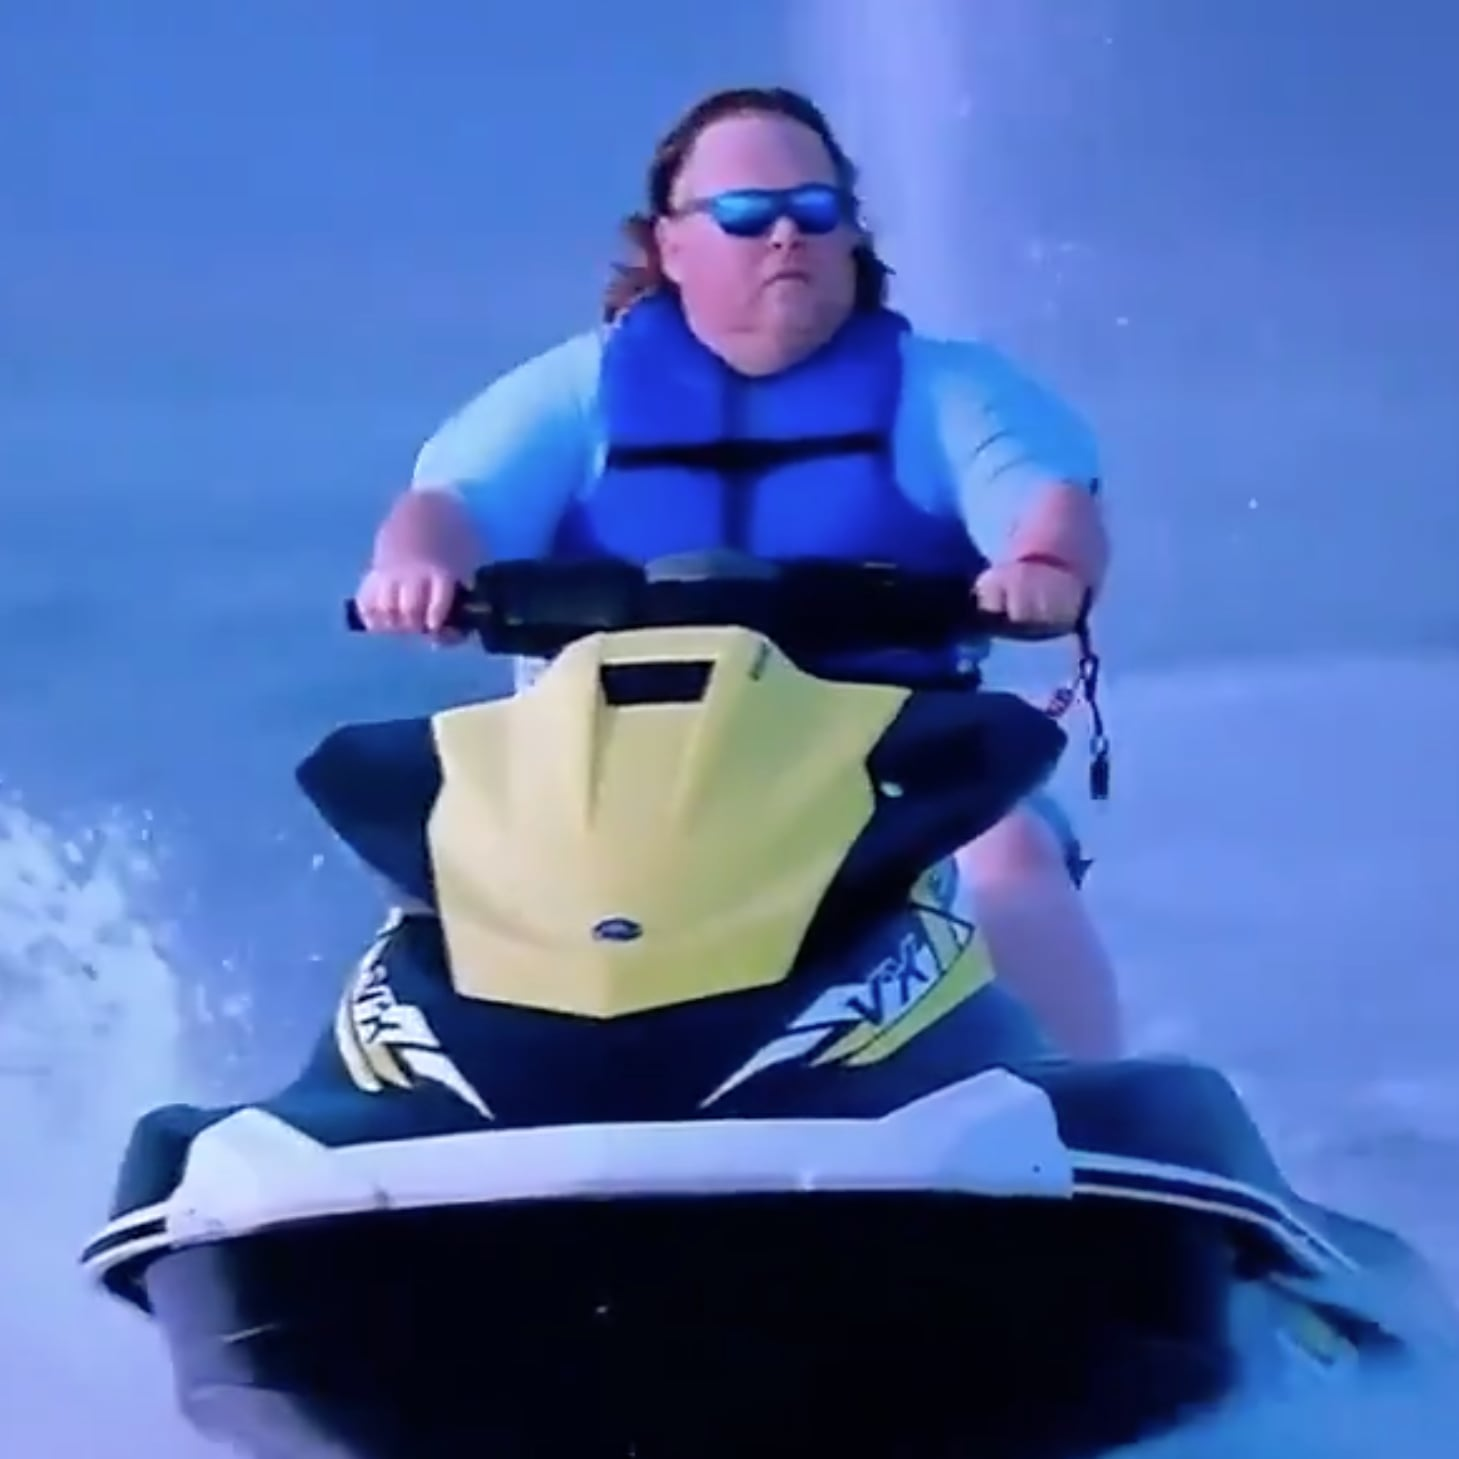 Tiger King Memes Inspired by James Garretson's Jet Ski Scene ...